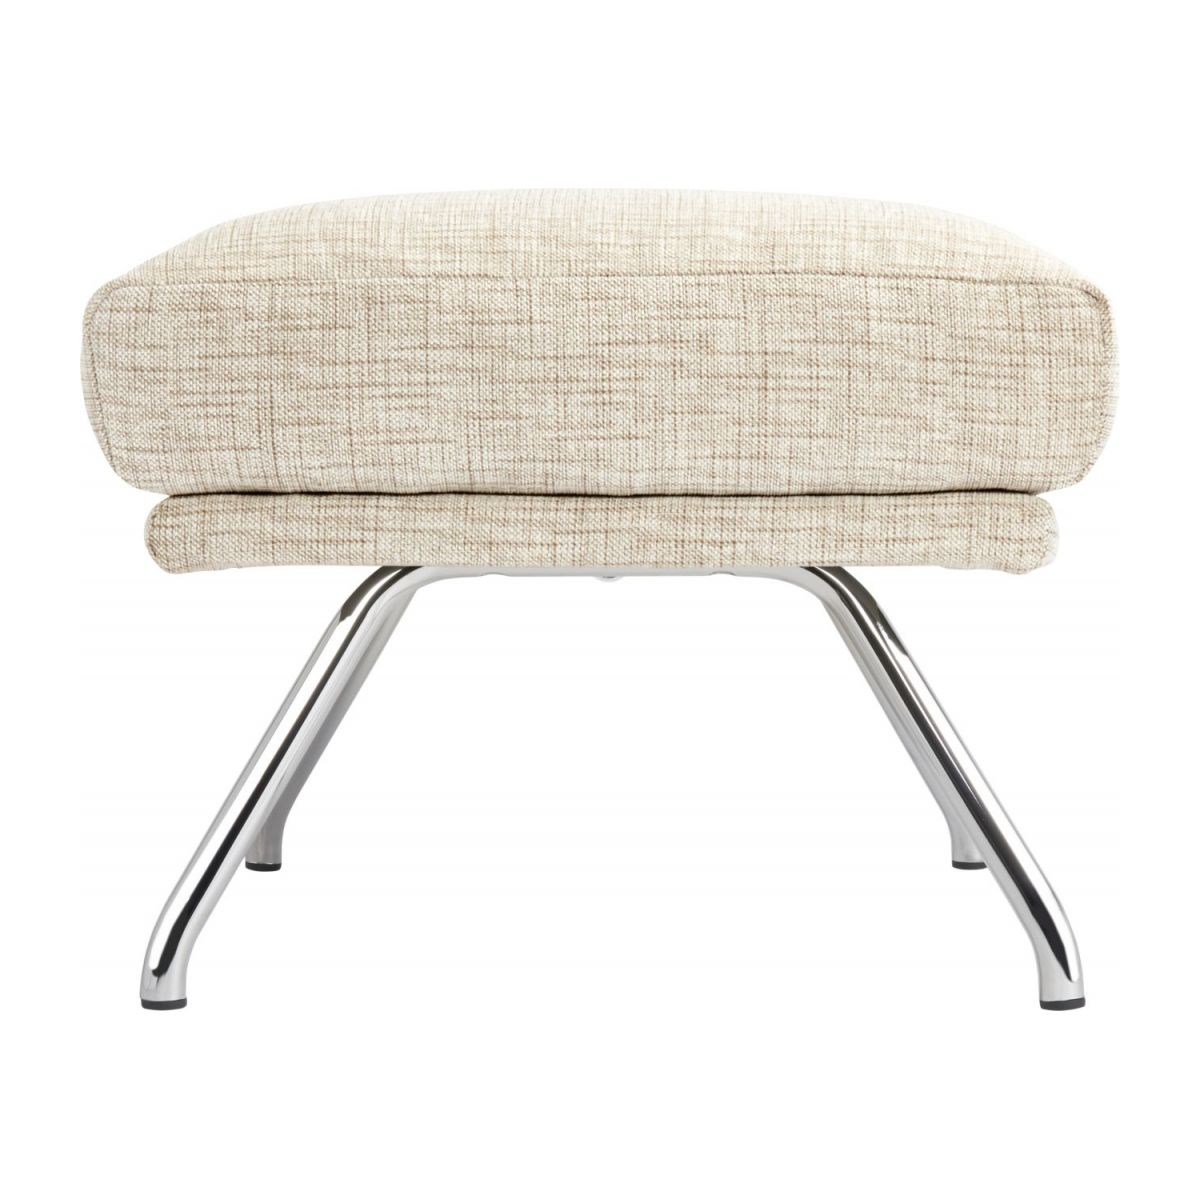 Footstool in Ancio fabric, nature with chromed metal legs n°3